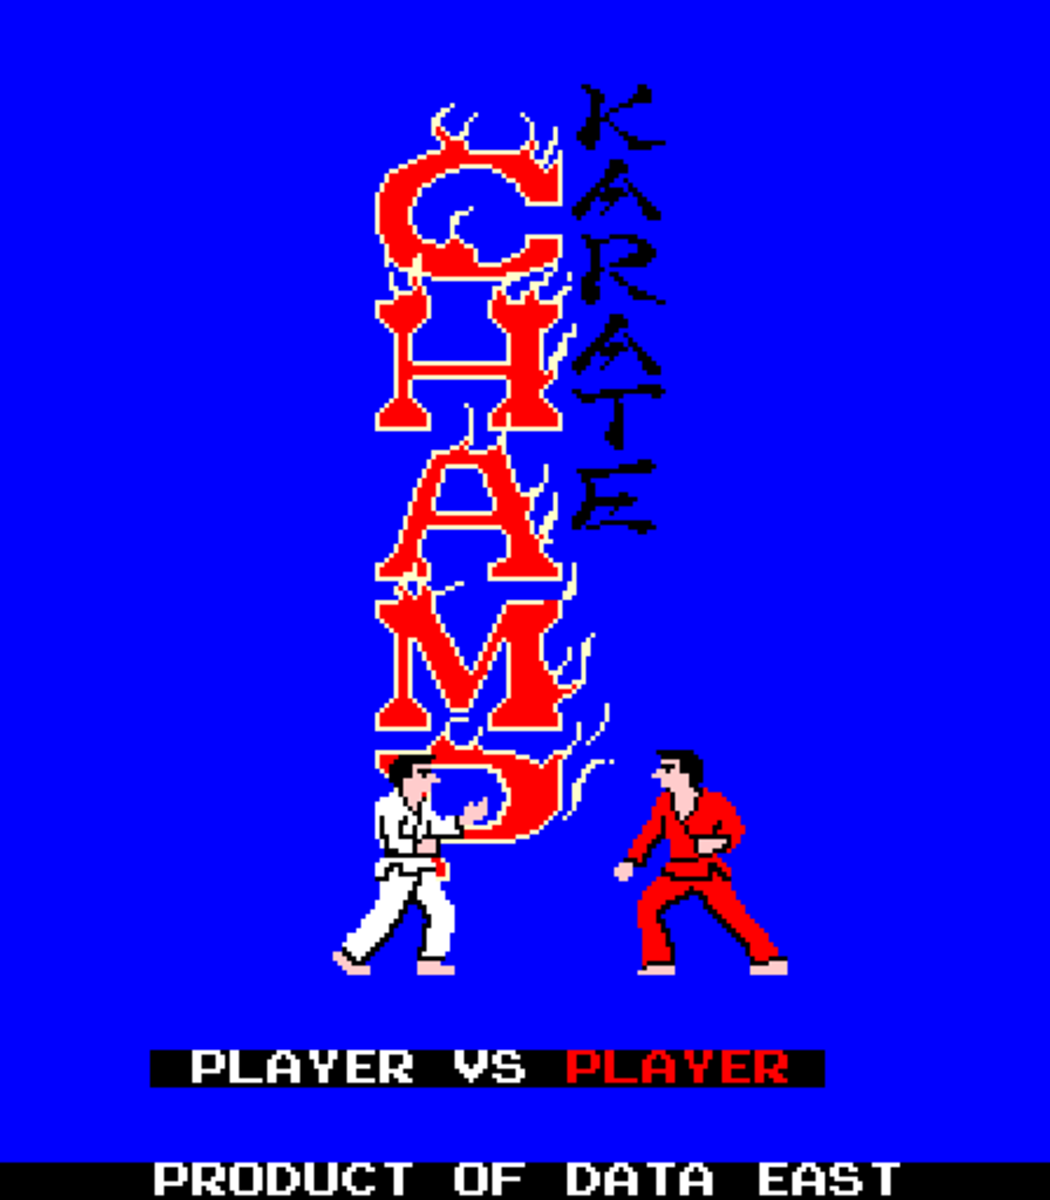 Insert Coins into Karate Champ Player One...